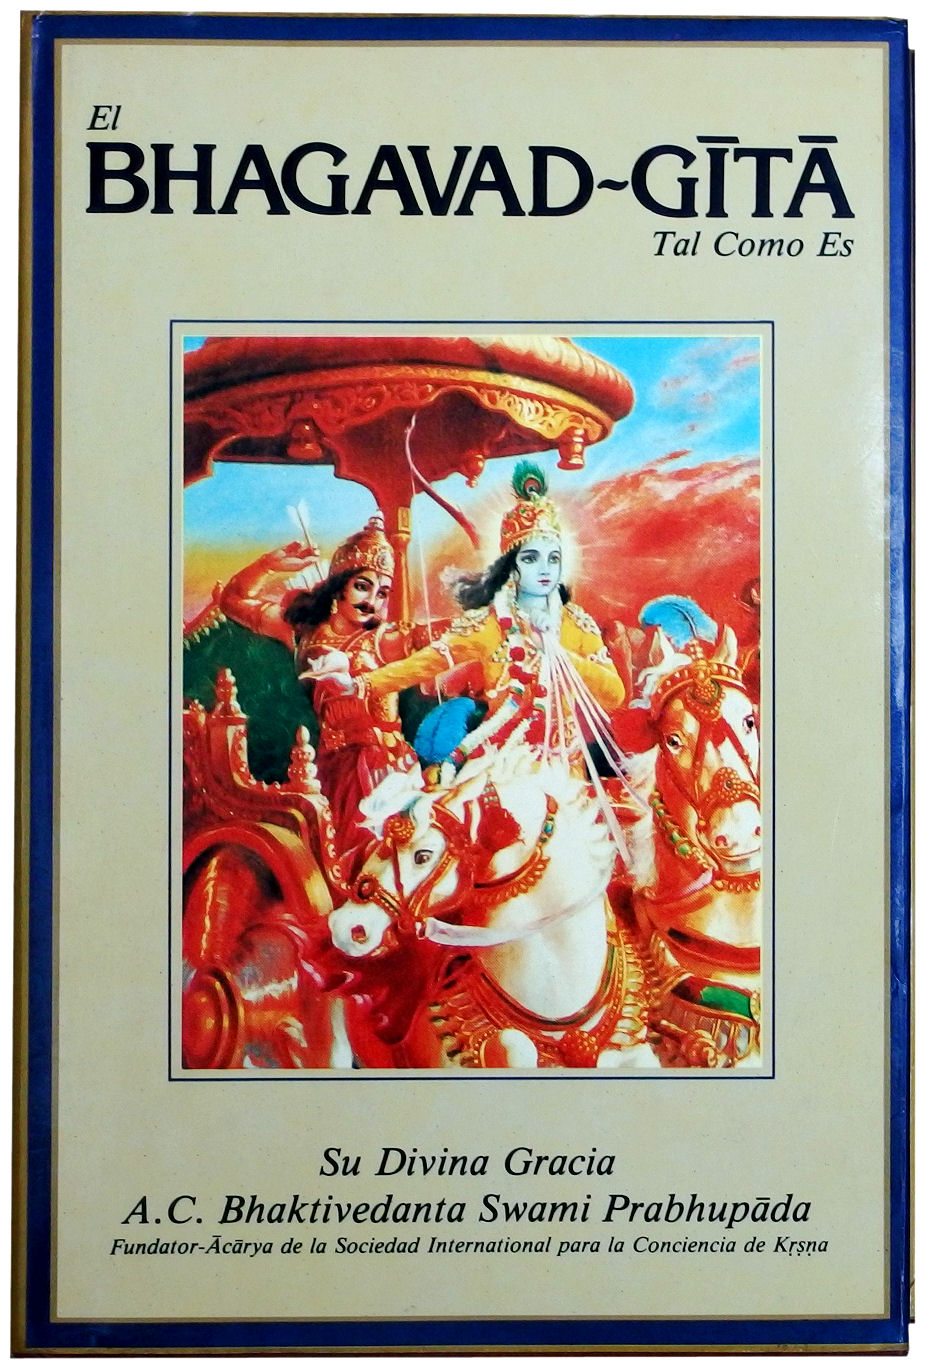 BHAGAVAD GITA TAL COMO ES PDF FREE DOWNLOAD (also gifted